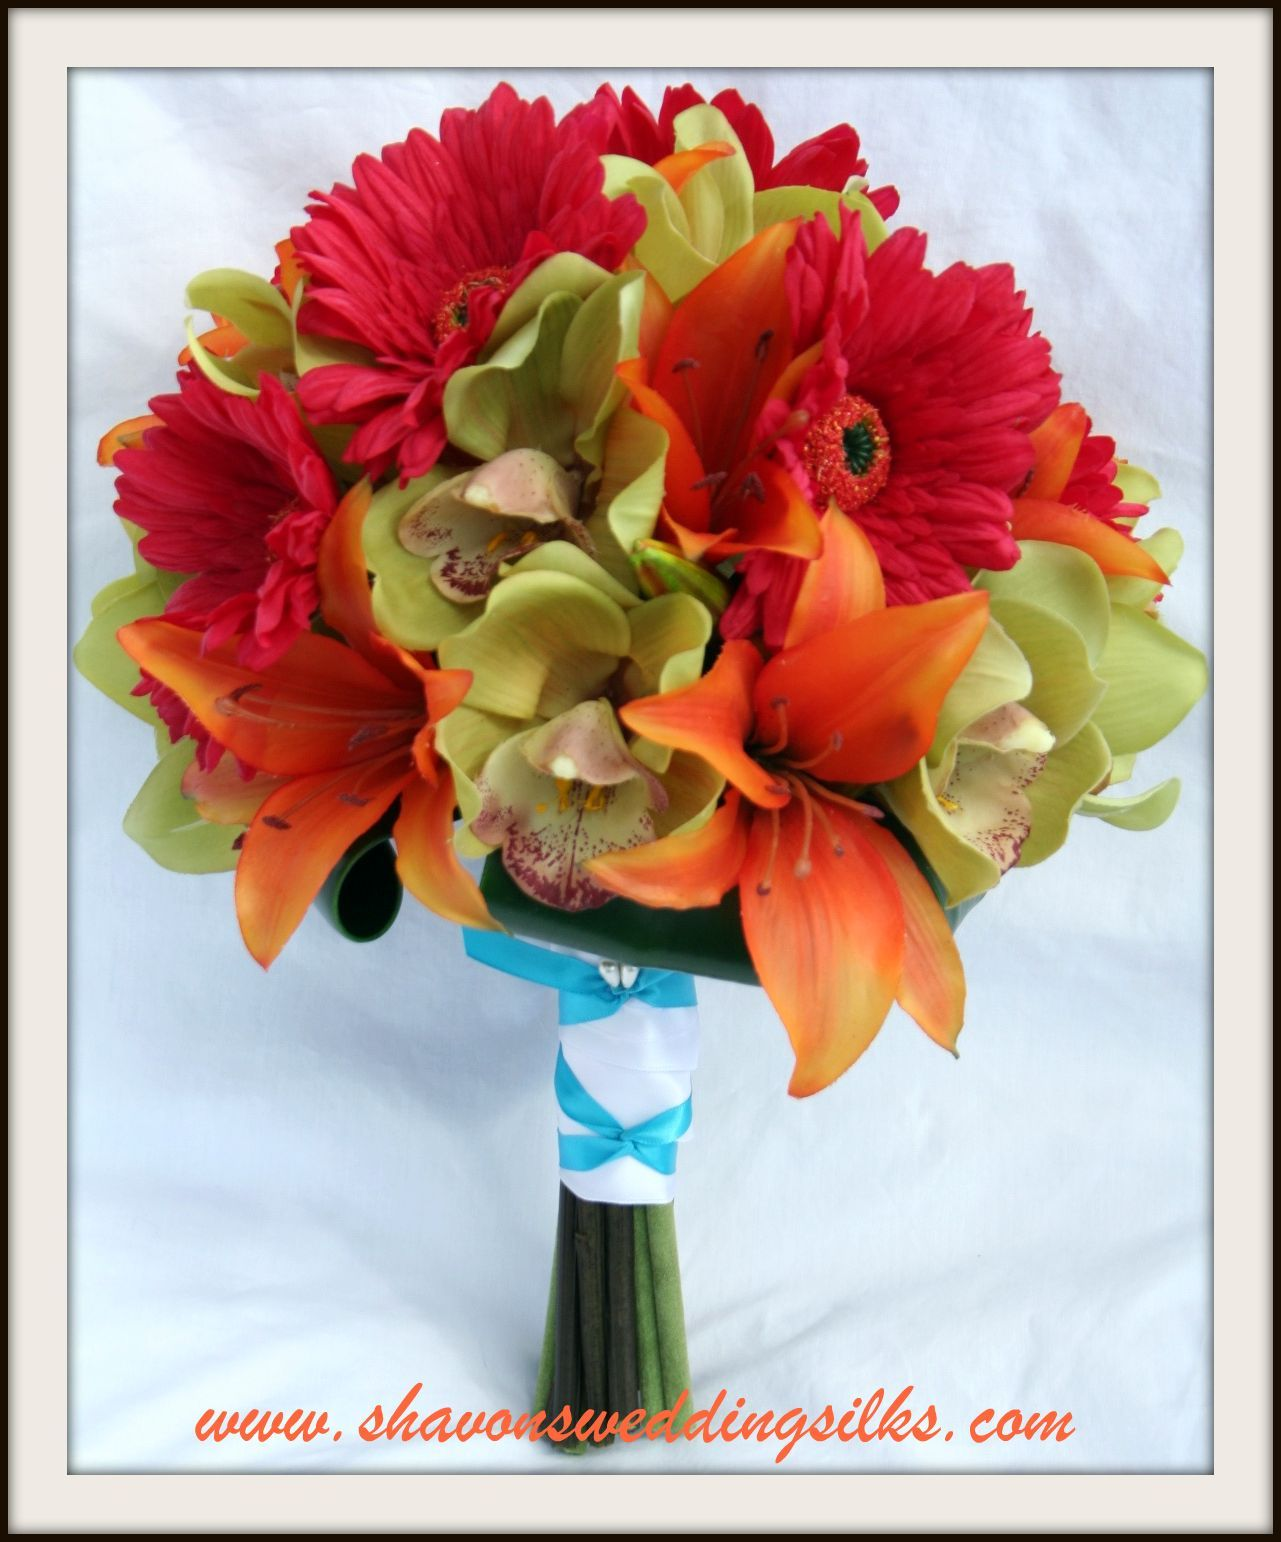 Flowers & Decor, orange, pink, green, Flowers, Wedding, Tropical, Lilies, Bridal, Orchids, Daisies, Gerbera, Shavons wedding silks